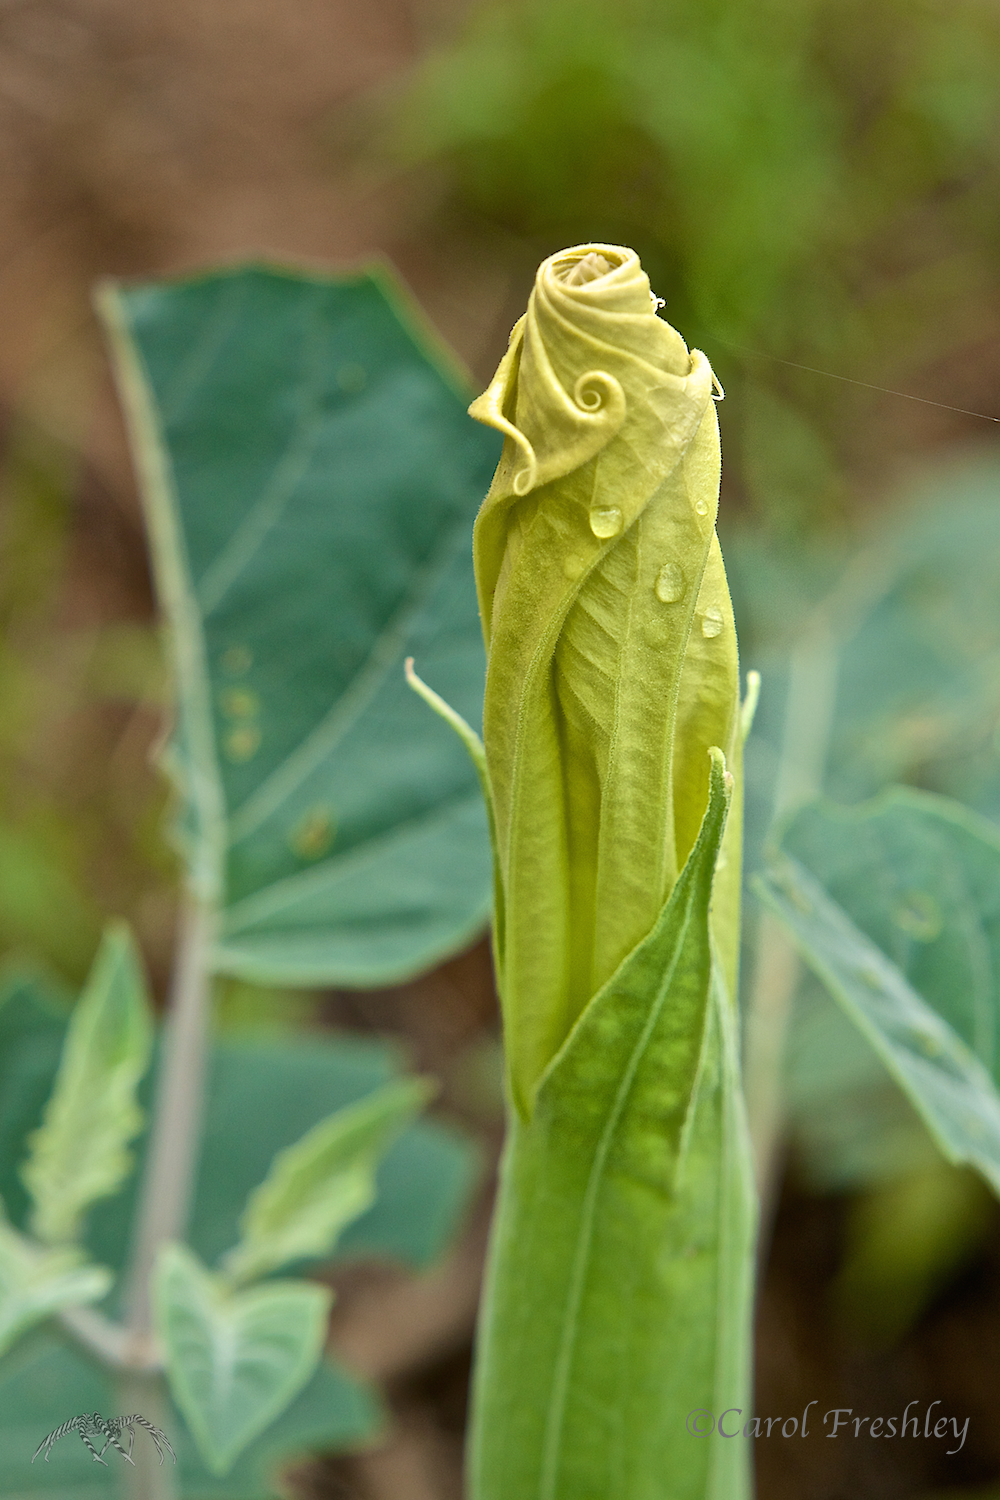 Datura thrives along this sandy path.